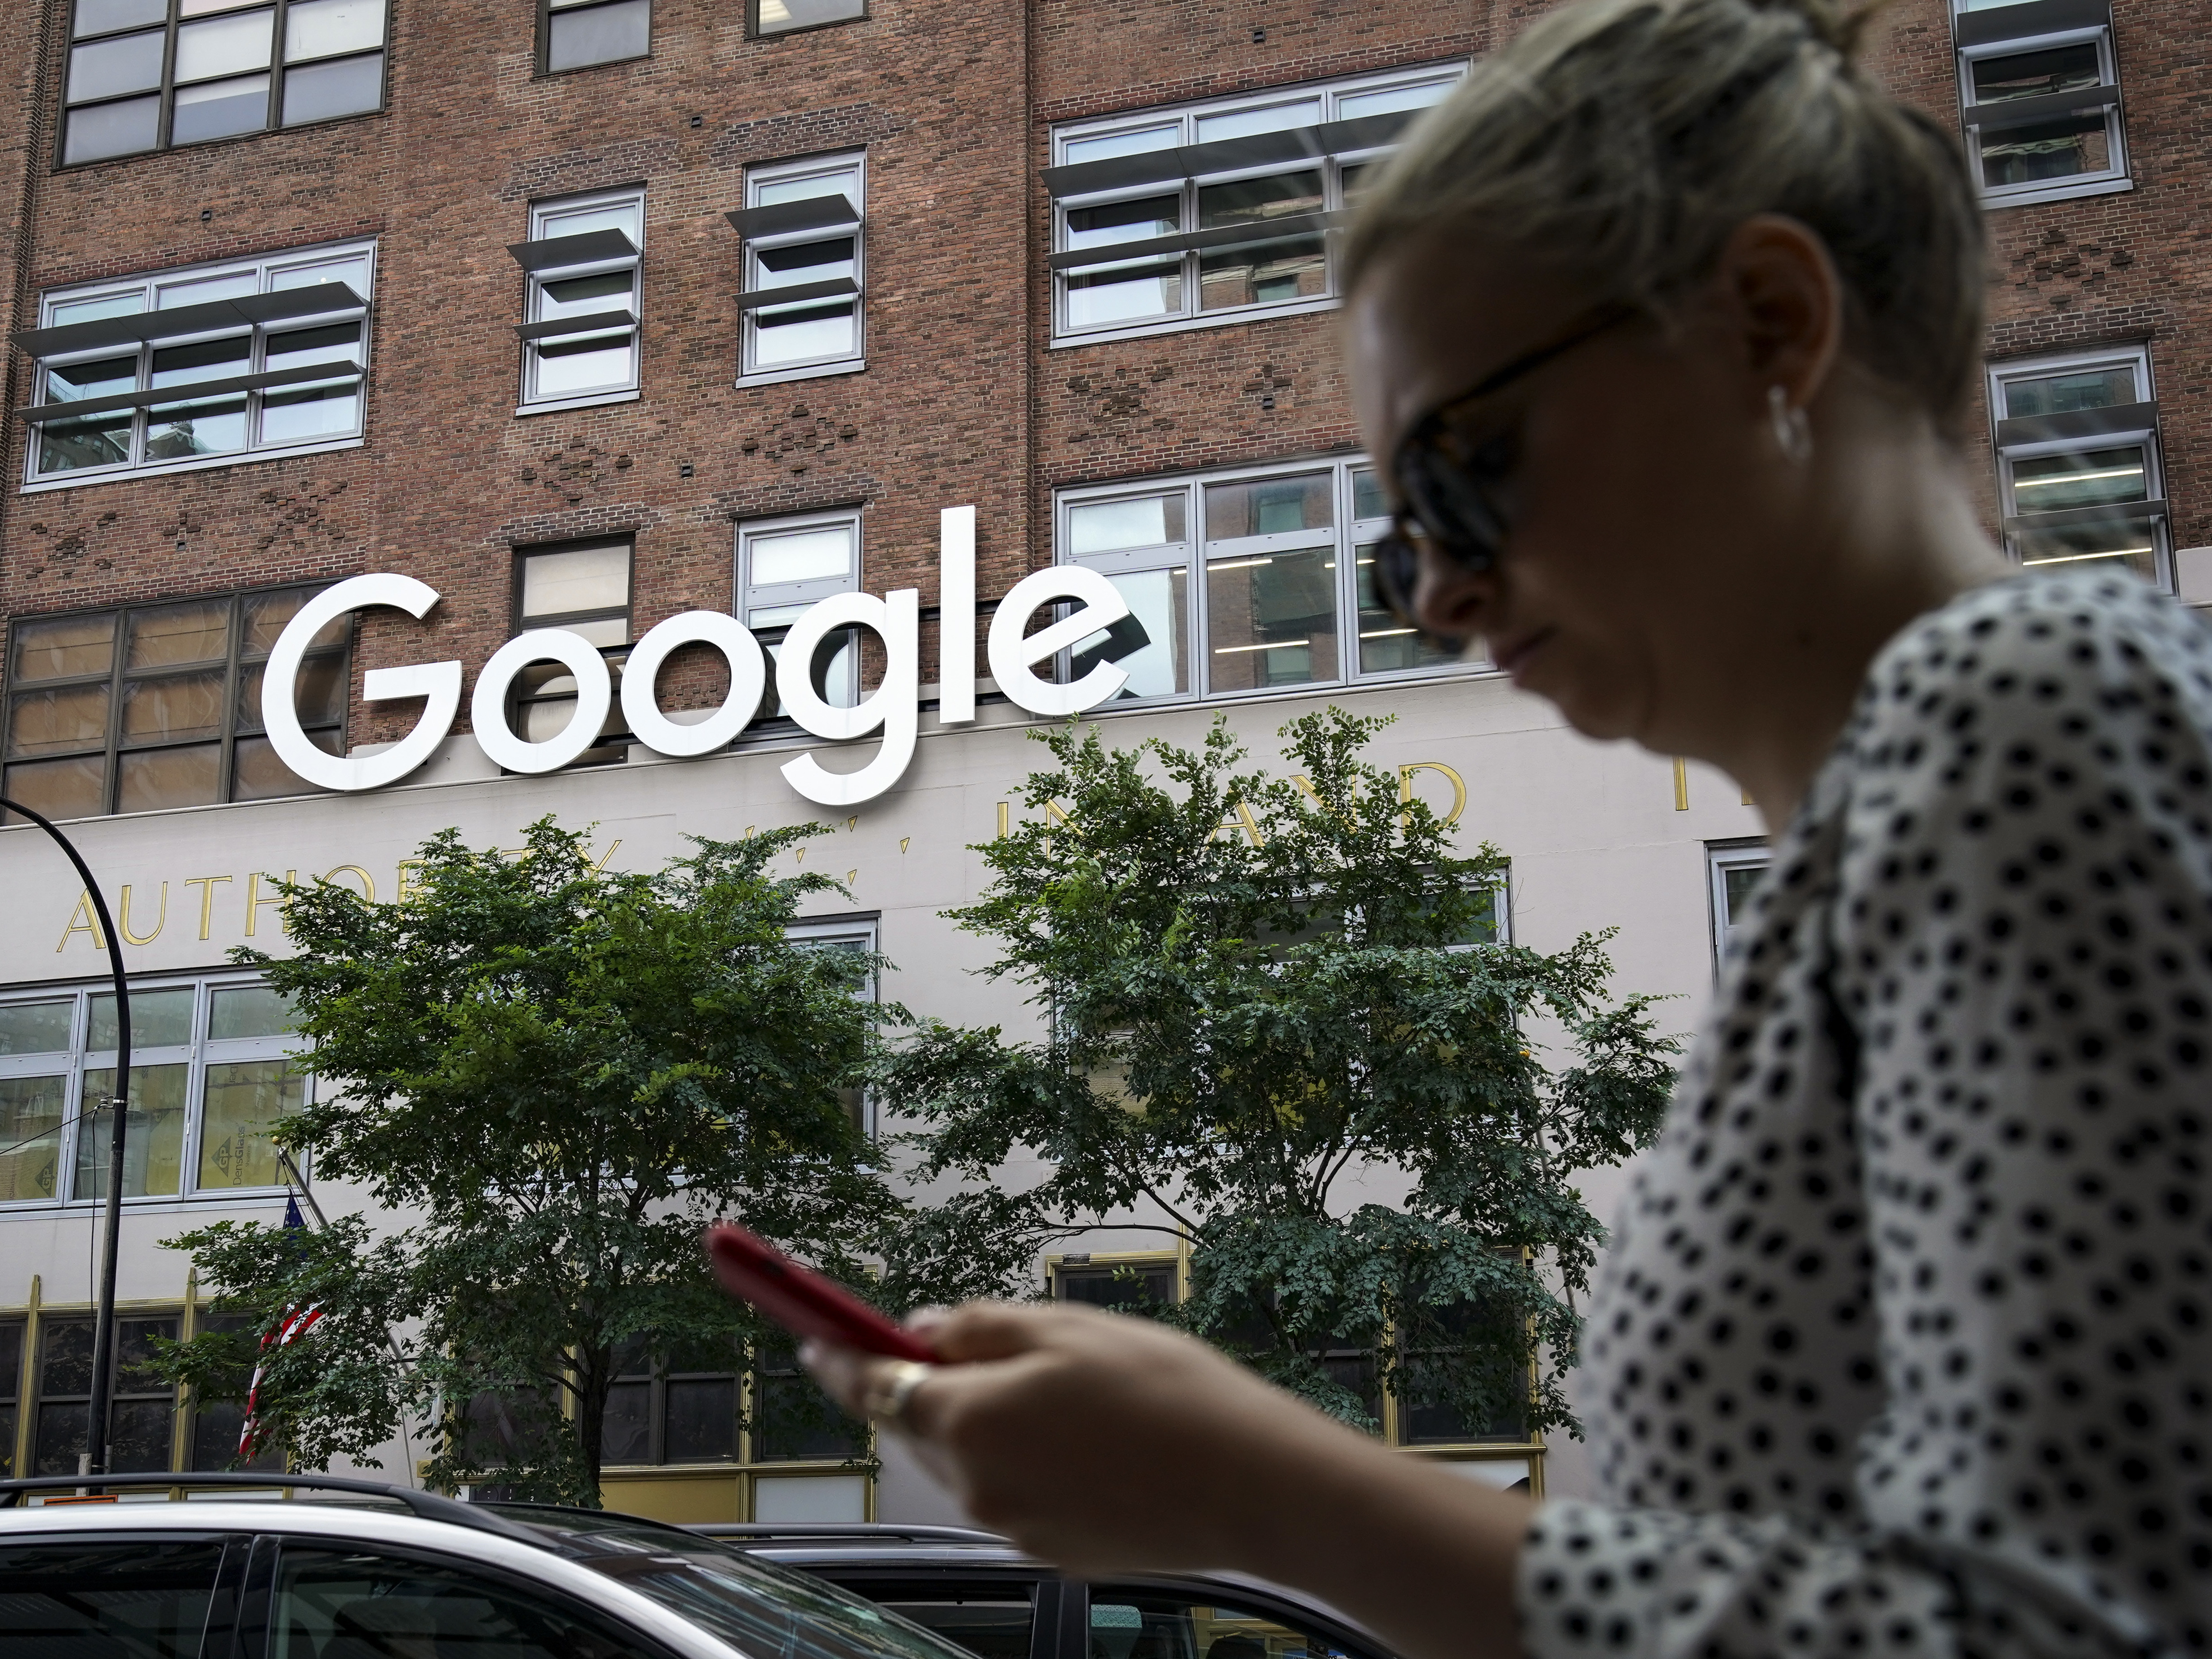 Google Abuses Its Monopoly Power Over Search, Justice Department Says In Lawsuit